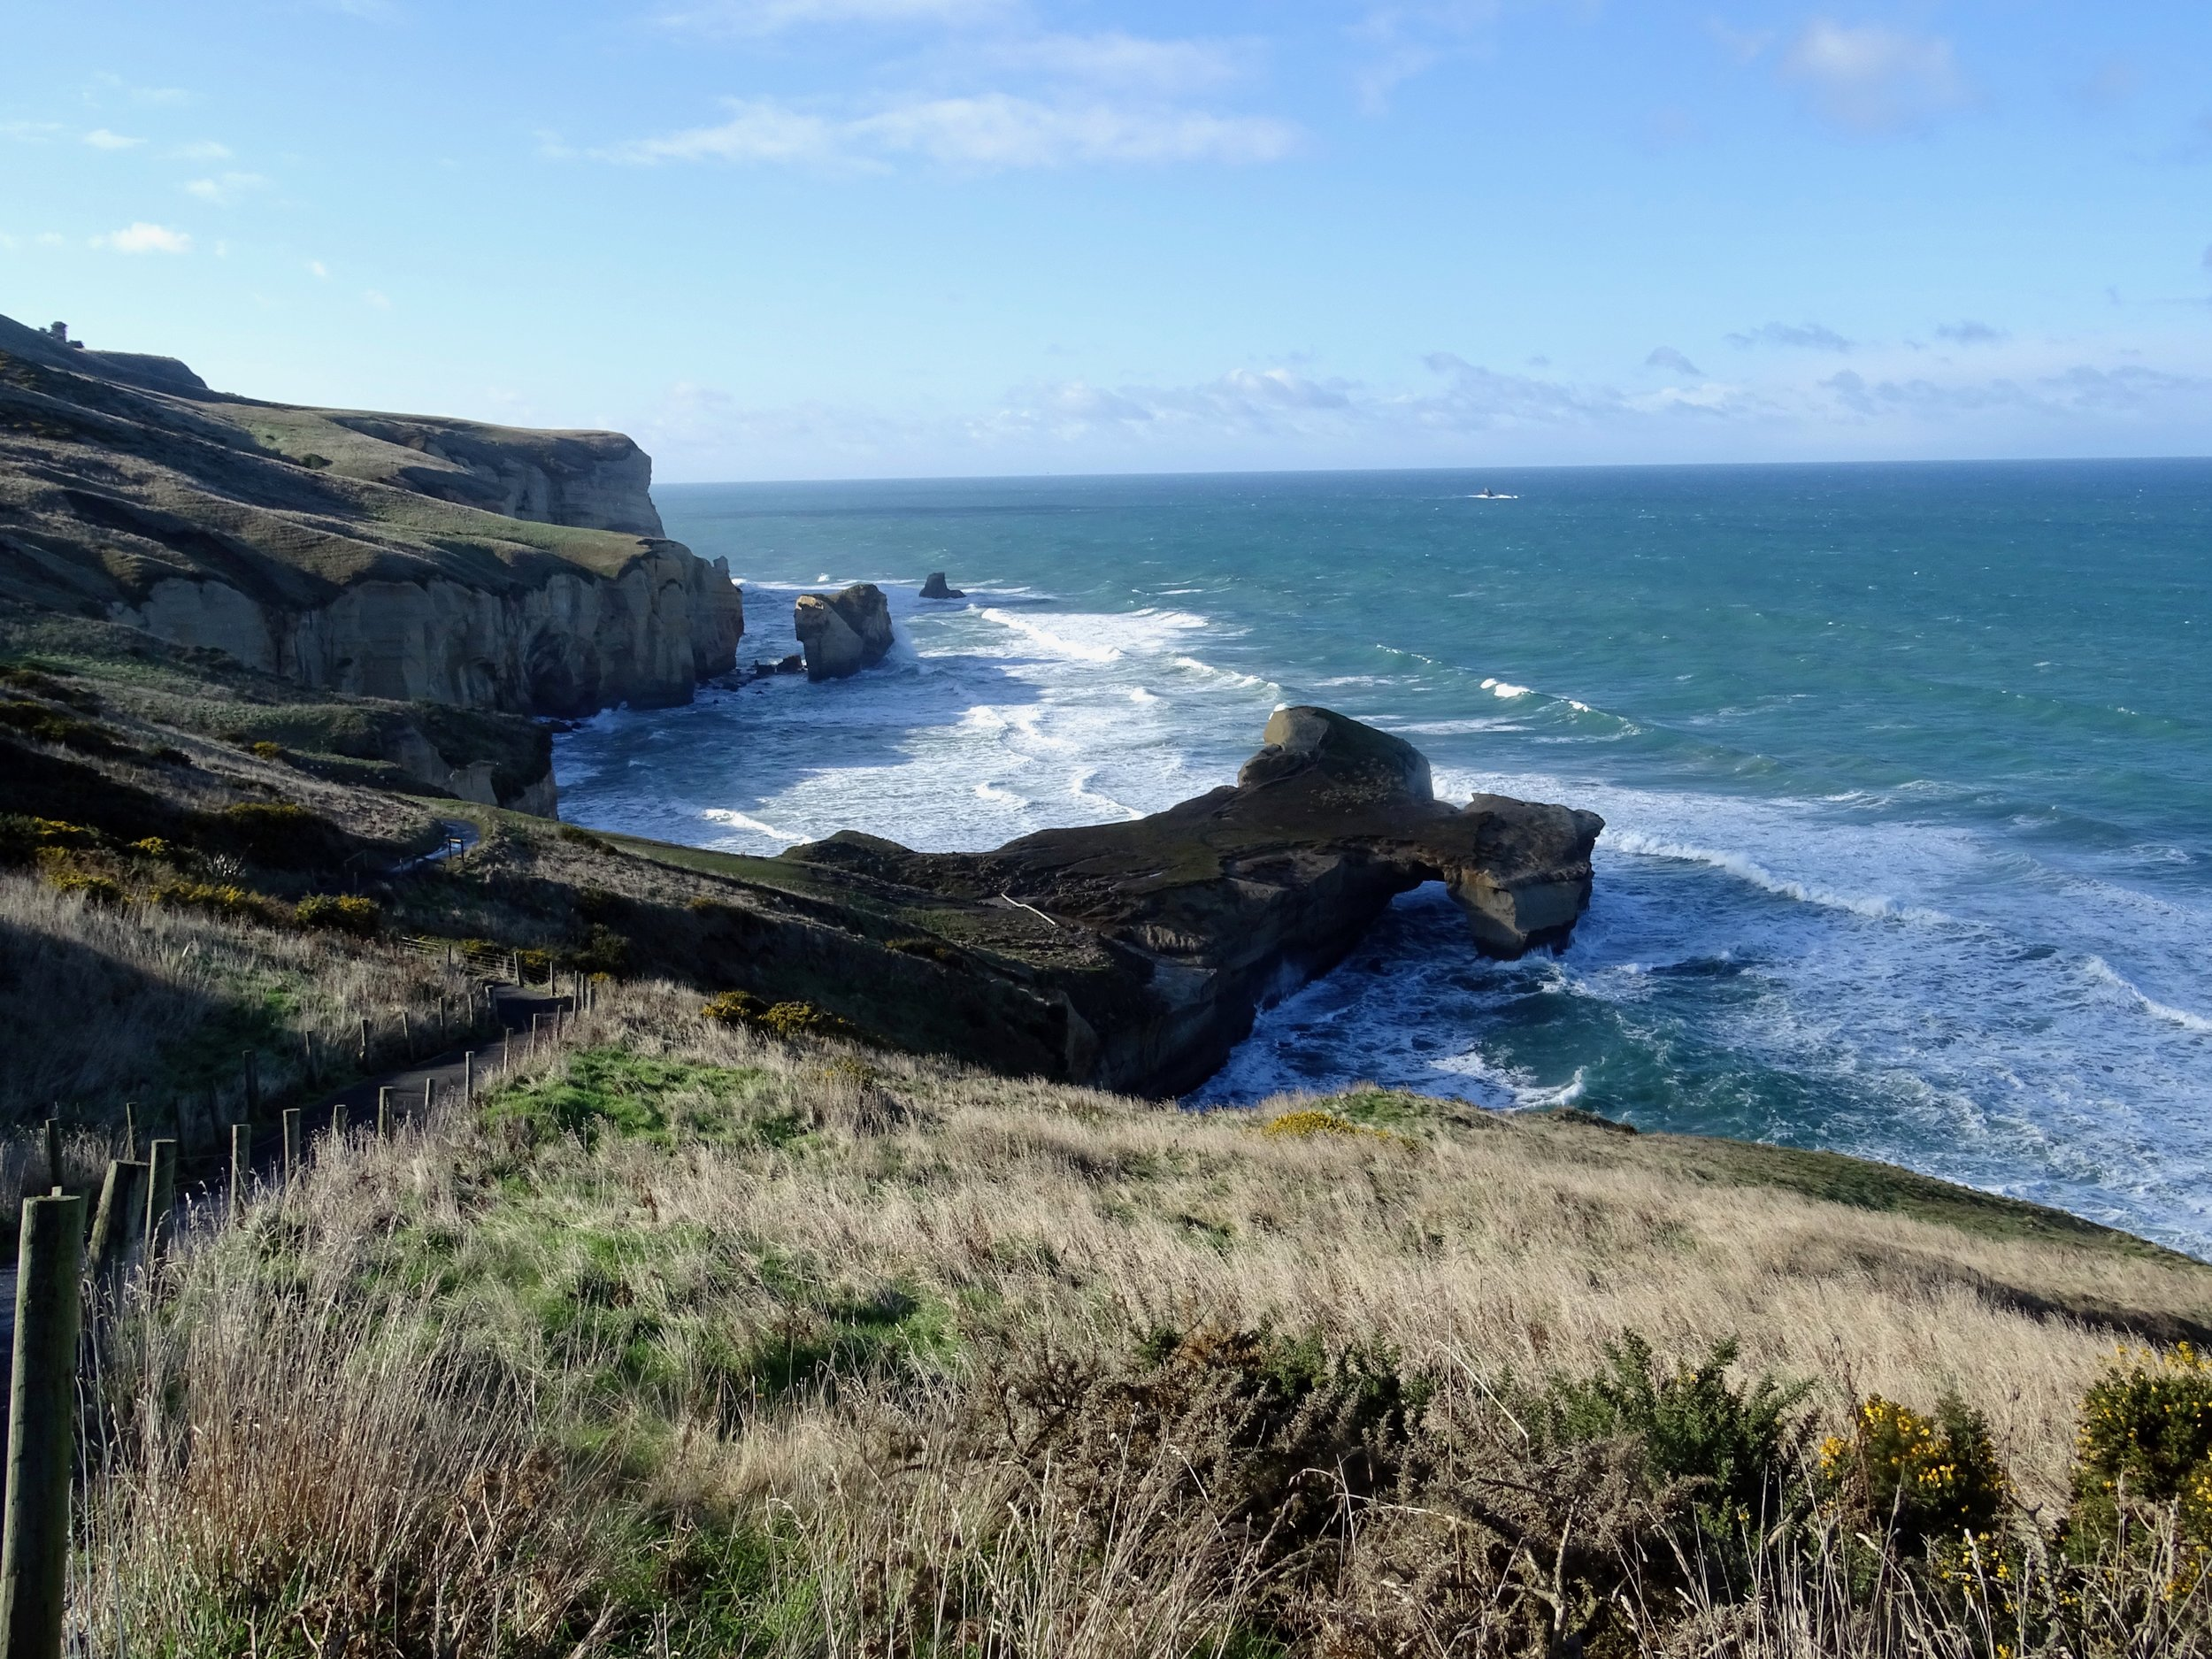 Just outside of Dunedin is a stunning hike called Tunnel Beach. It's a long, steep walk down to the entrance which gives you plenty of time to enjoy the views.